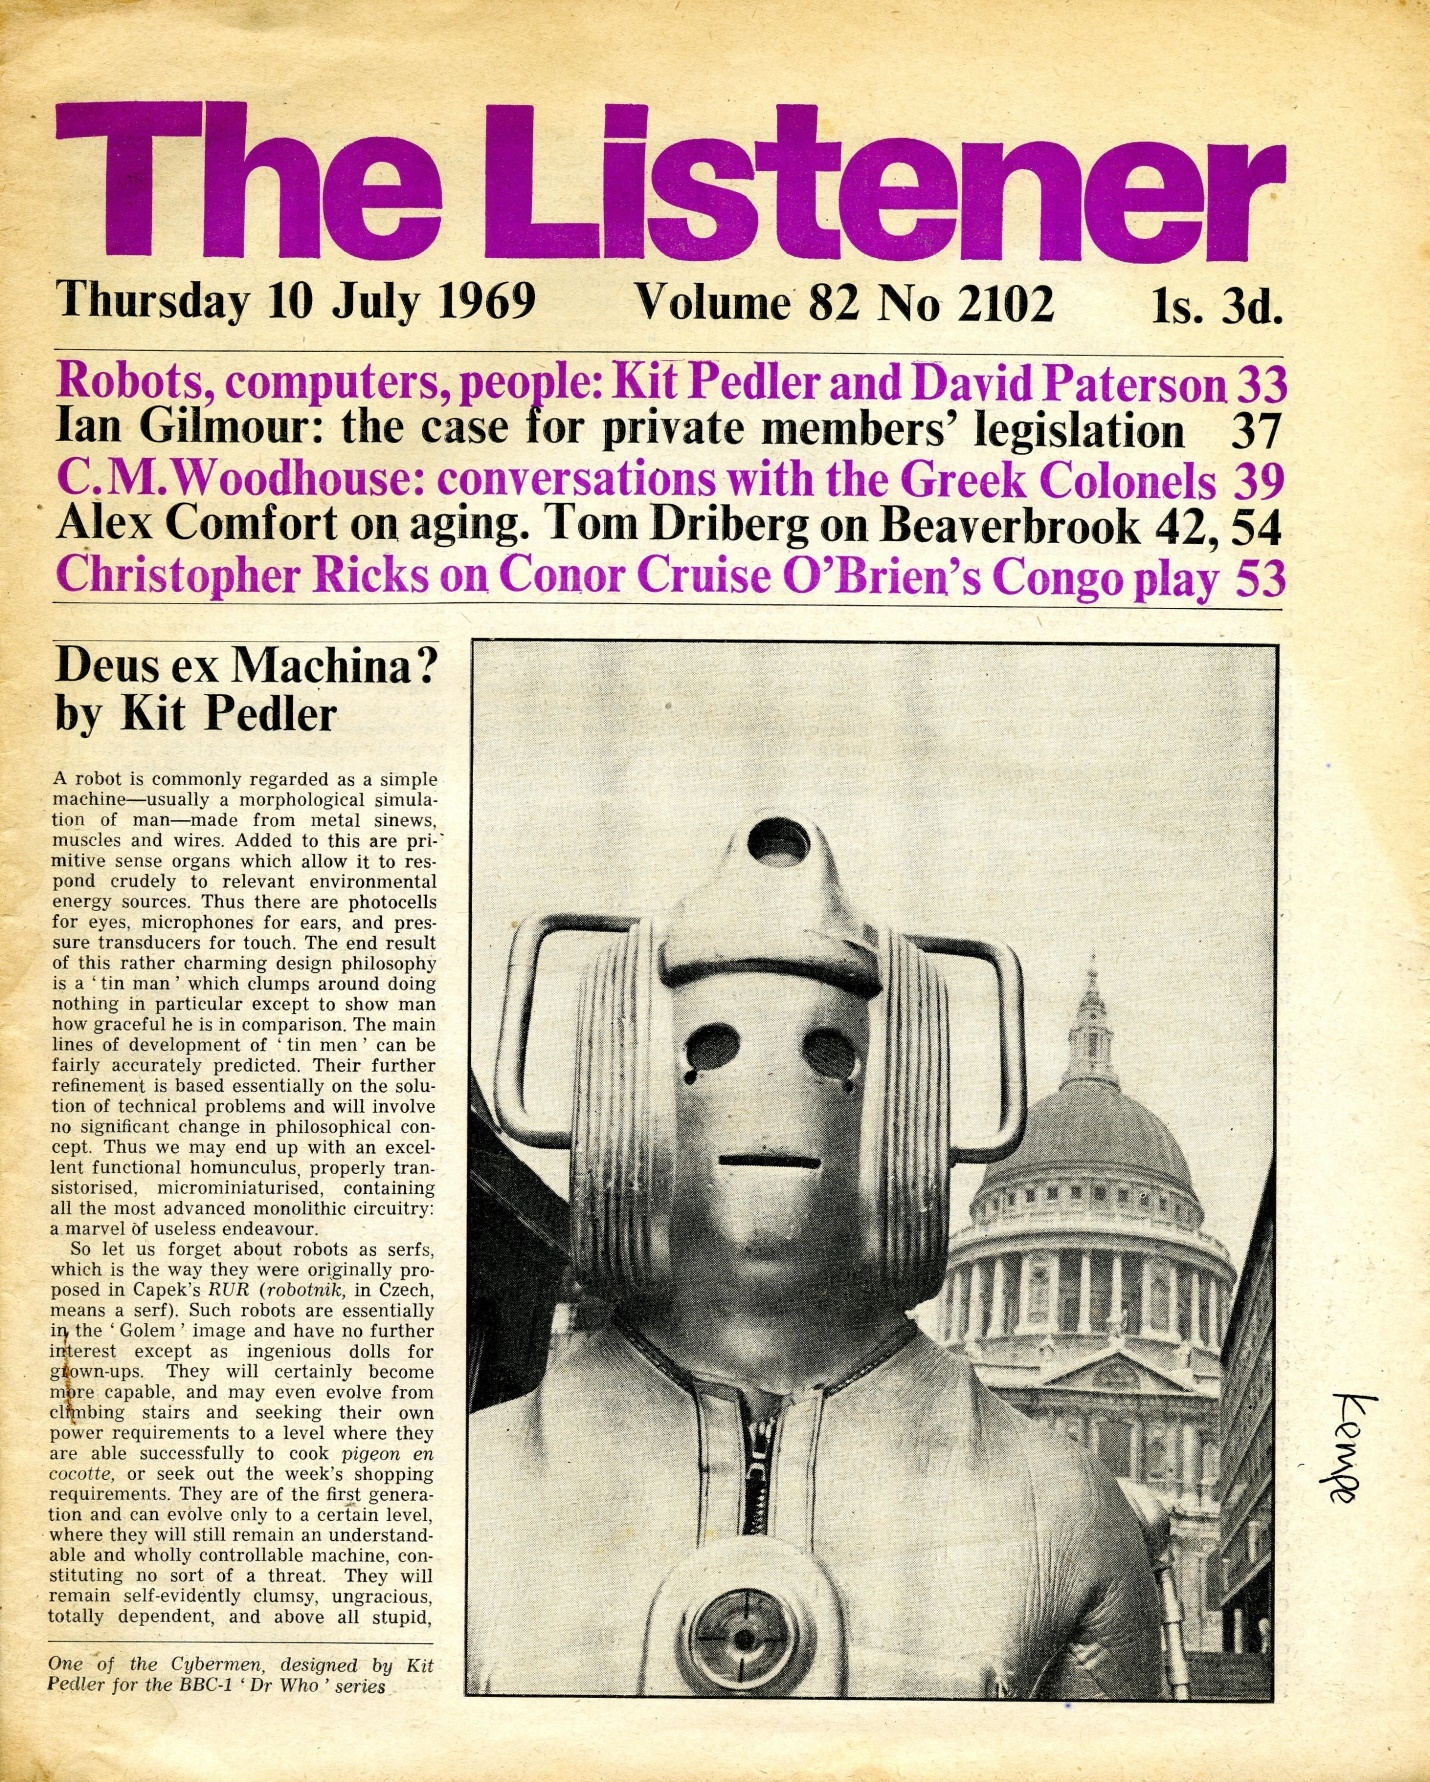 The Listener, published by the BBC, dated 10 July 1969